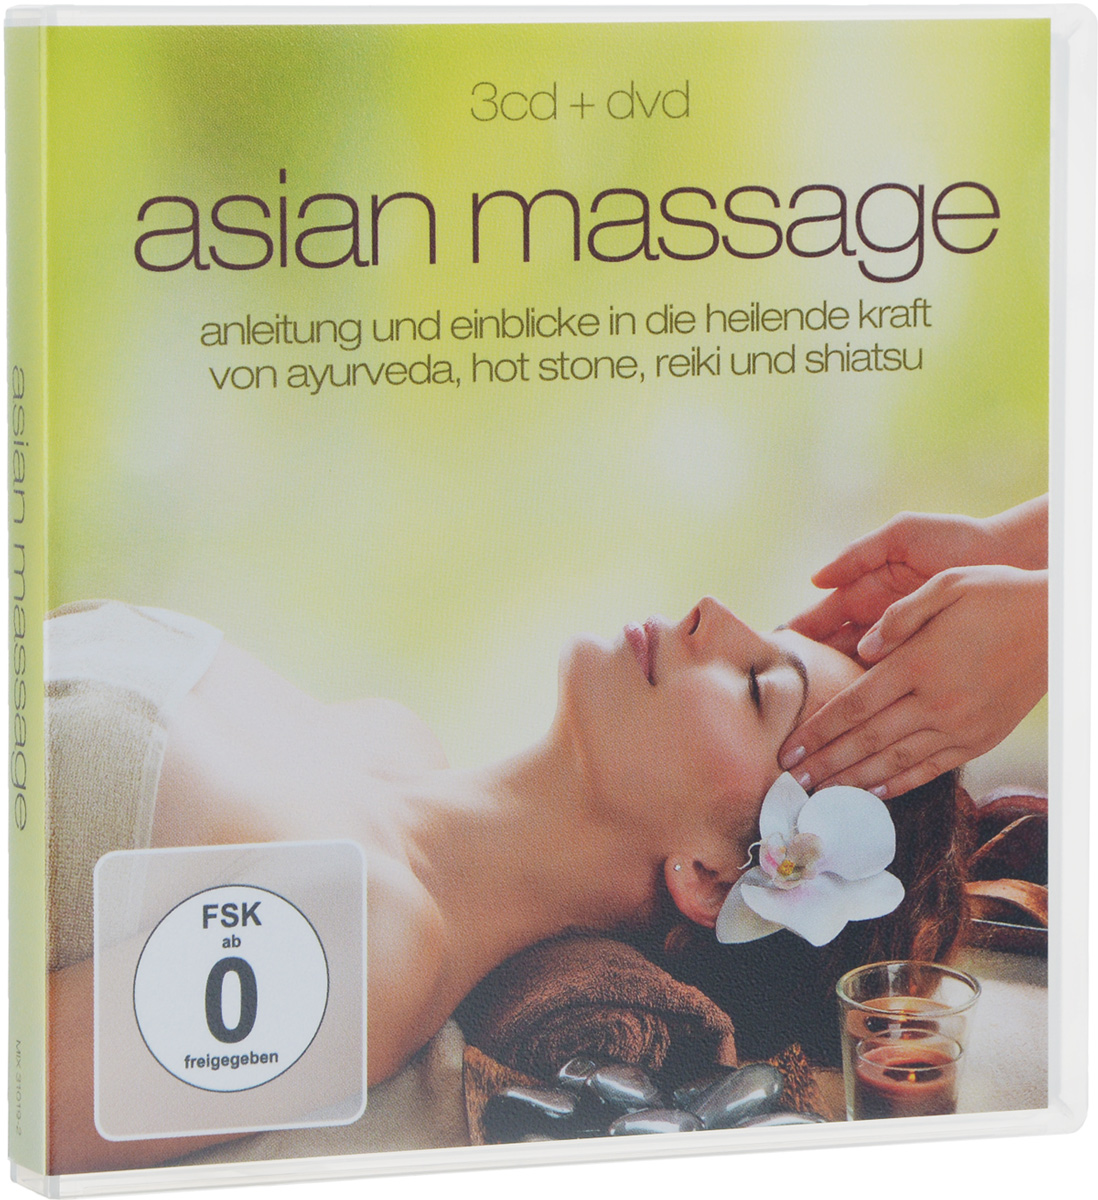 Yuma Haruto Paliashvili Asian Massage (3 CD + DVD) дутики der spur der spur de034amde817